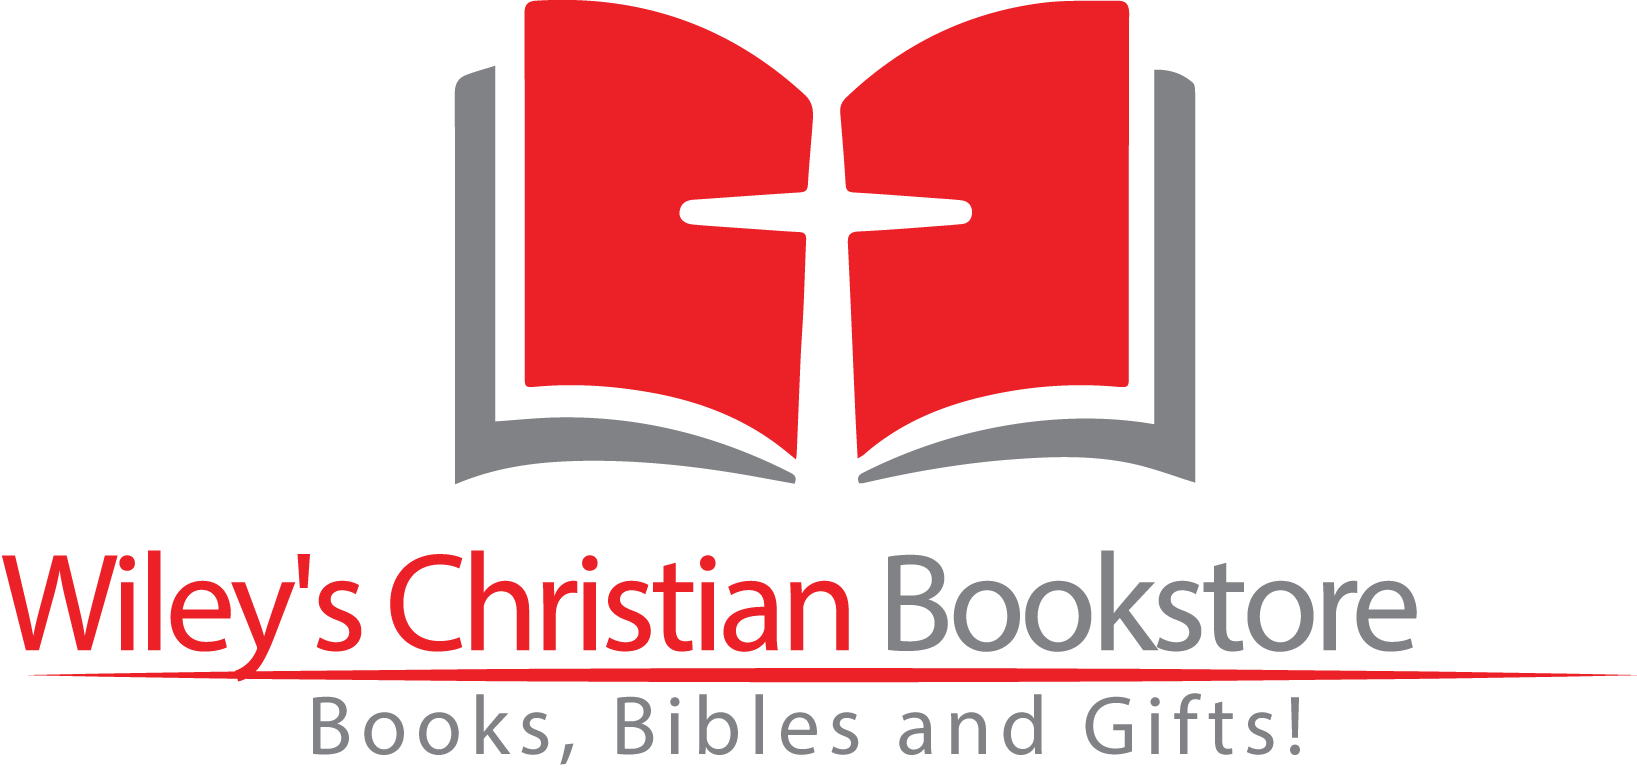 Wiley's Christian Bookstore